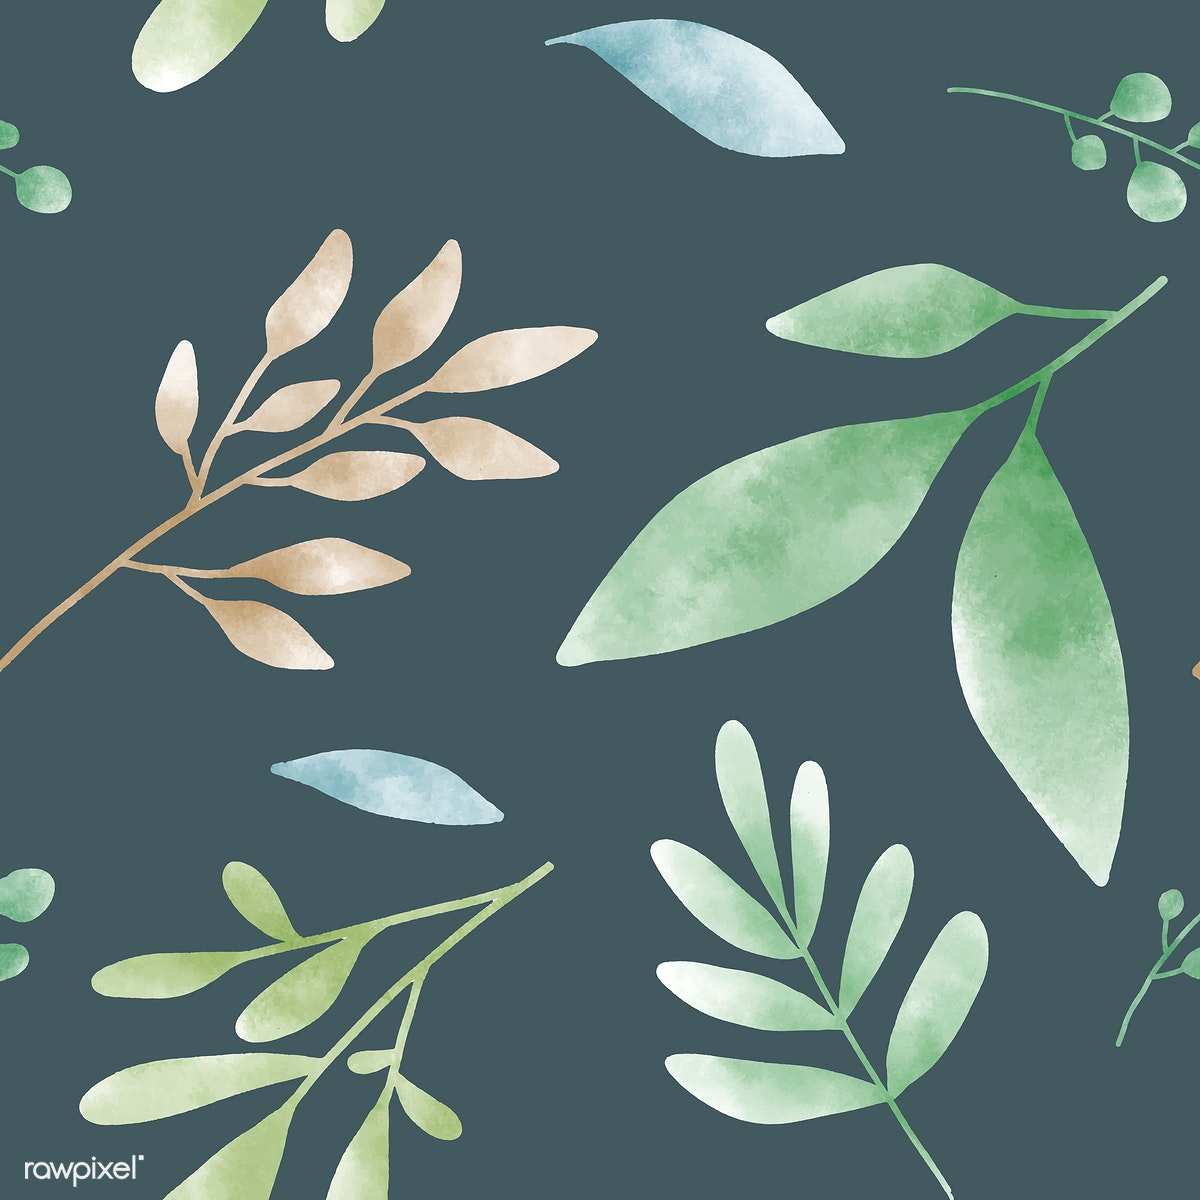 9c5e183935a3 Download premium vector of Watercolor leaves graphic pattern design 532602